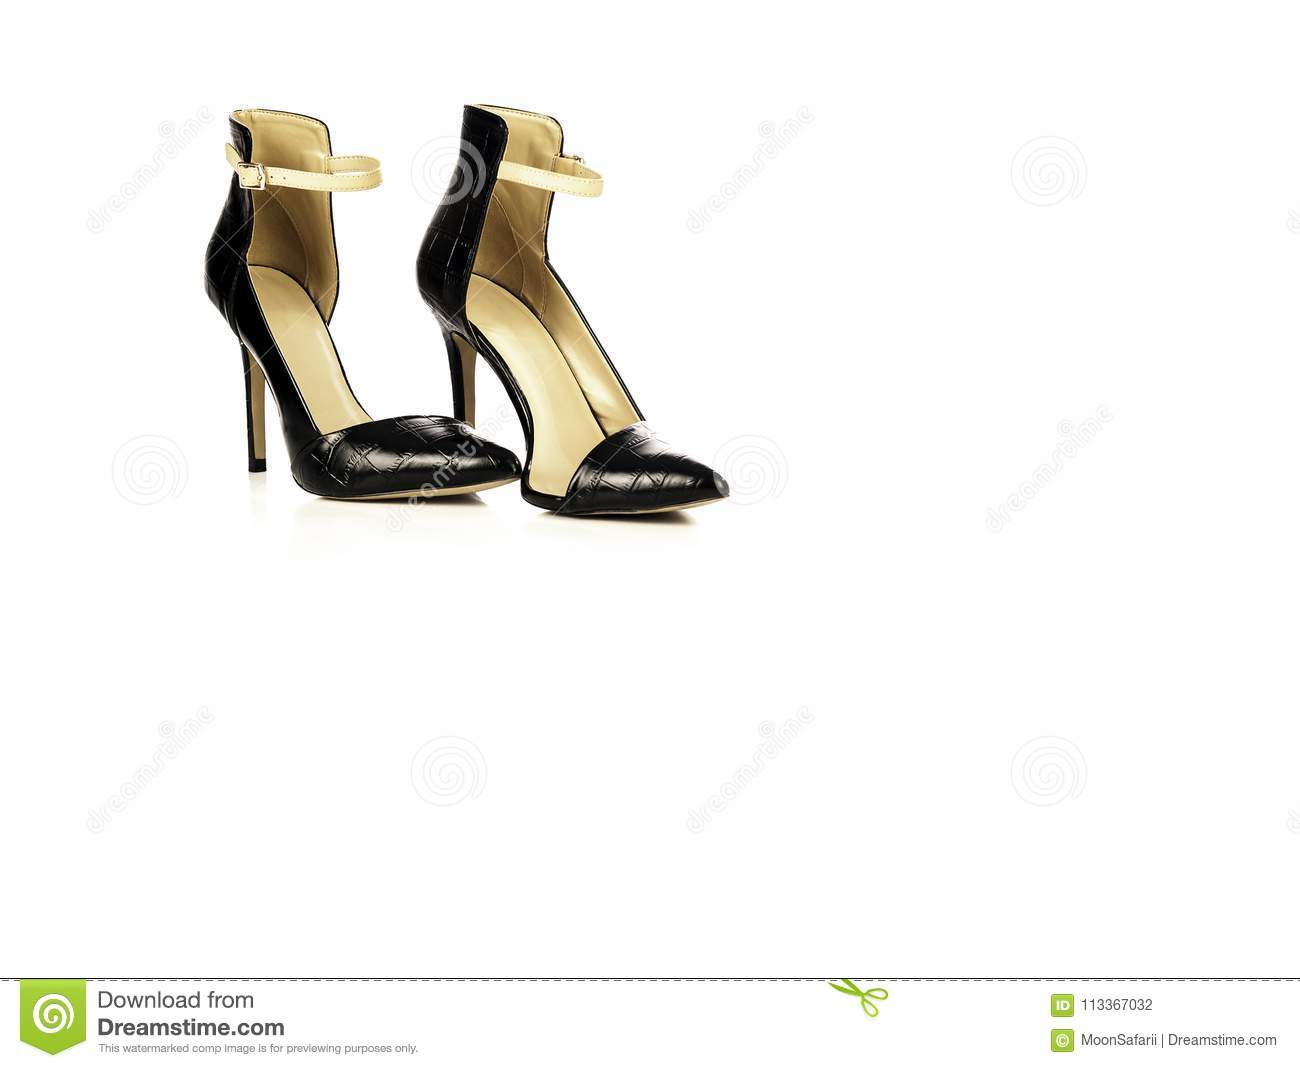 0665b43db4d0 Black leather elegant and stylish women shoes with high heel isolated on white  background